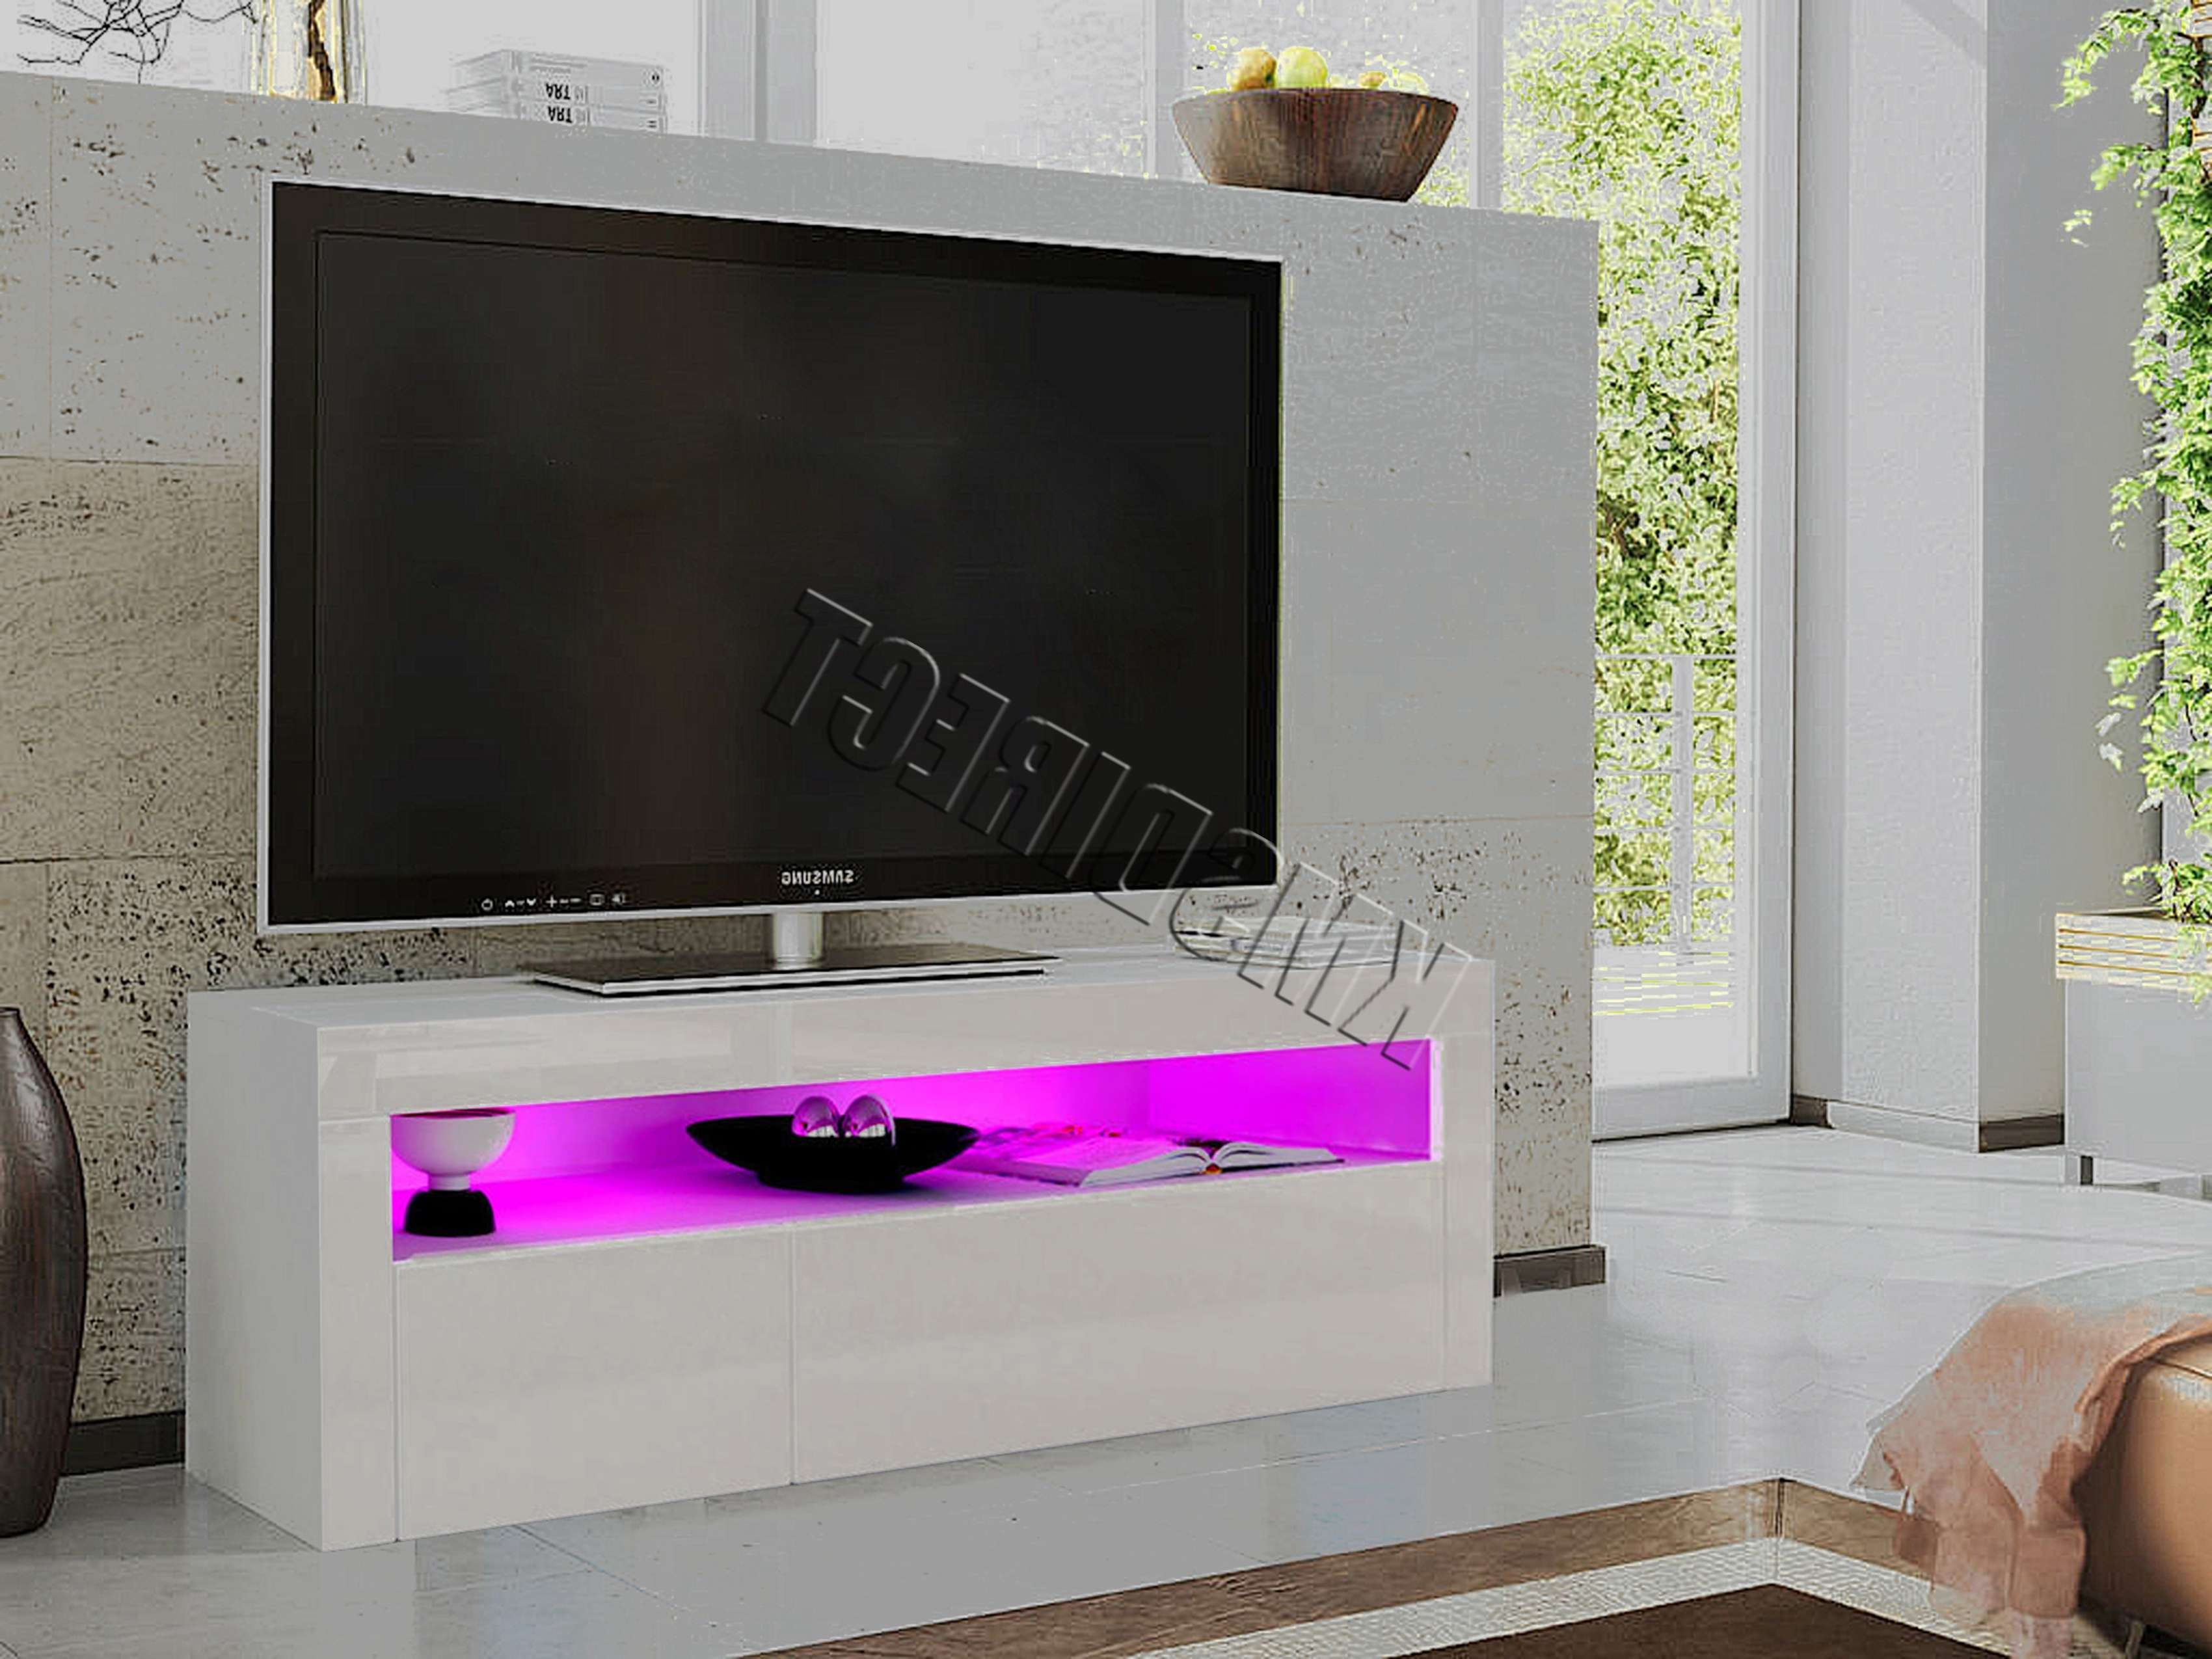 Foxhunter Modern High Gloss Matt Tv Cabinet Unit Stand White Rgb For White High Gloss Tv Stands (View 7 of 15)